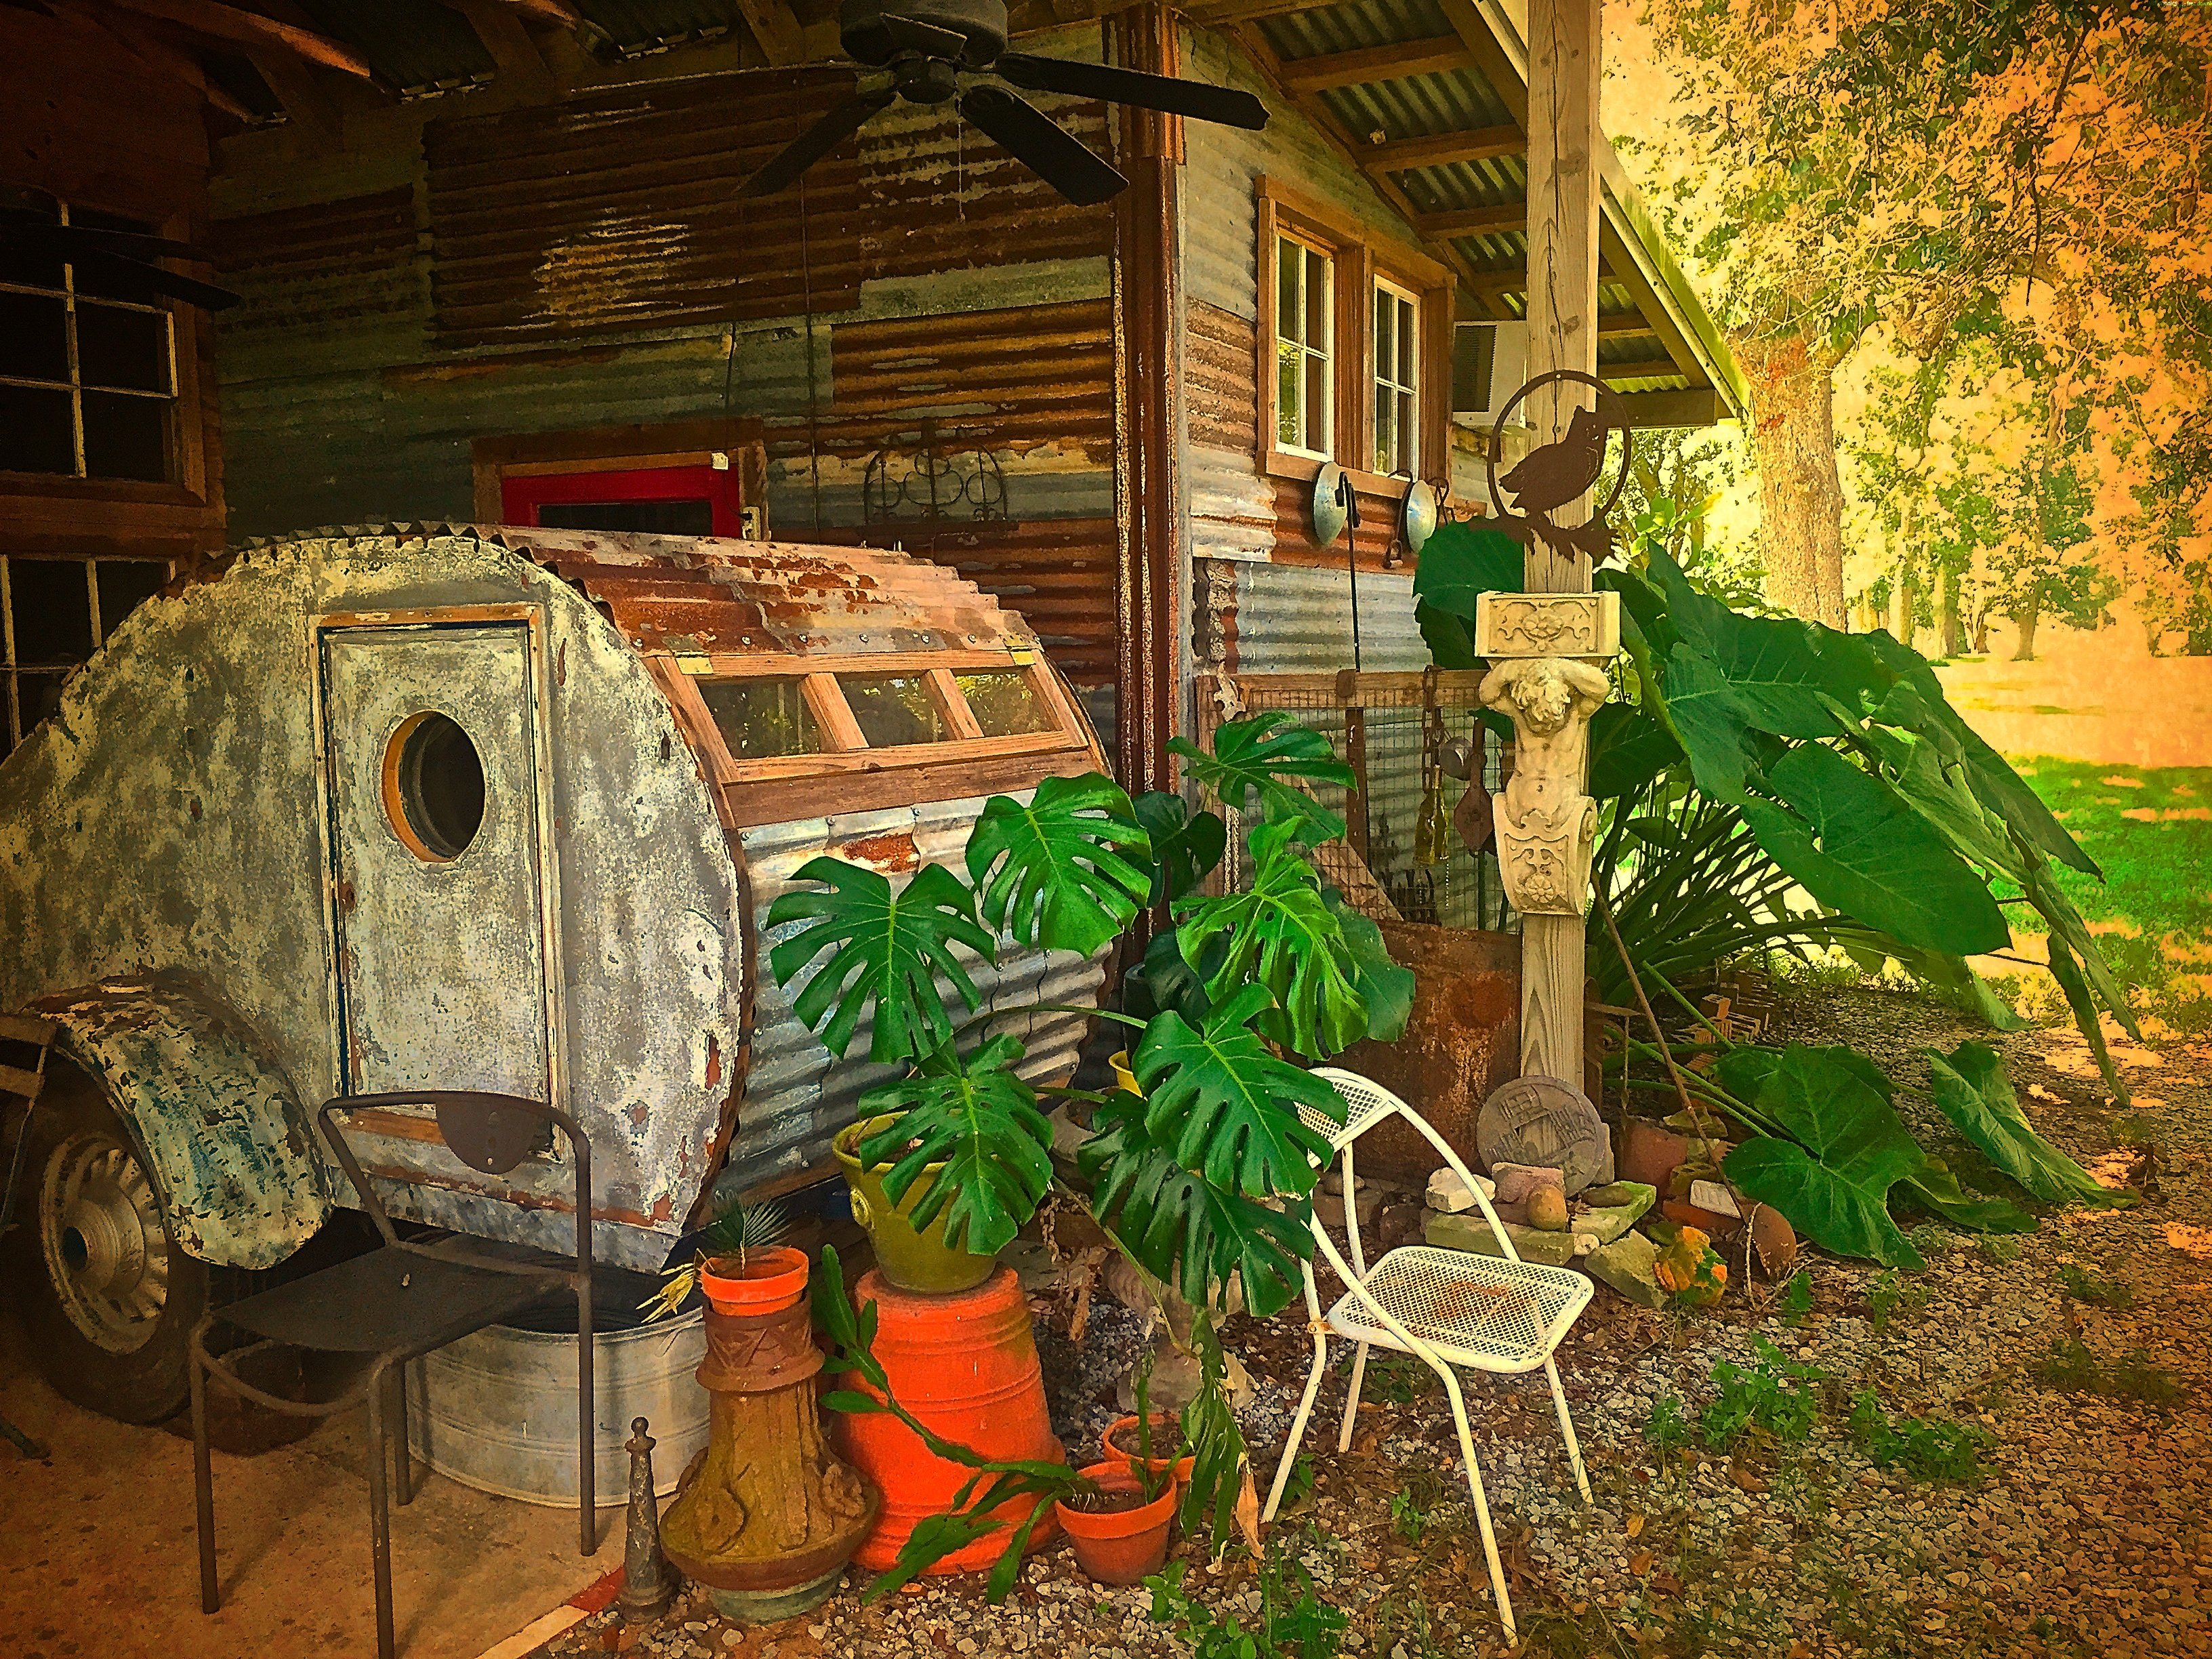 The 30's truck frame Steampunk Teardrop camper is a double bed for the The Folk Art Barn